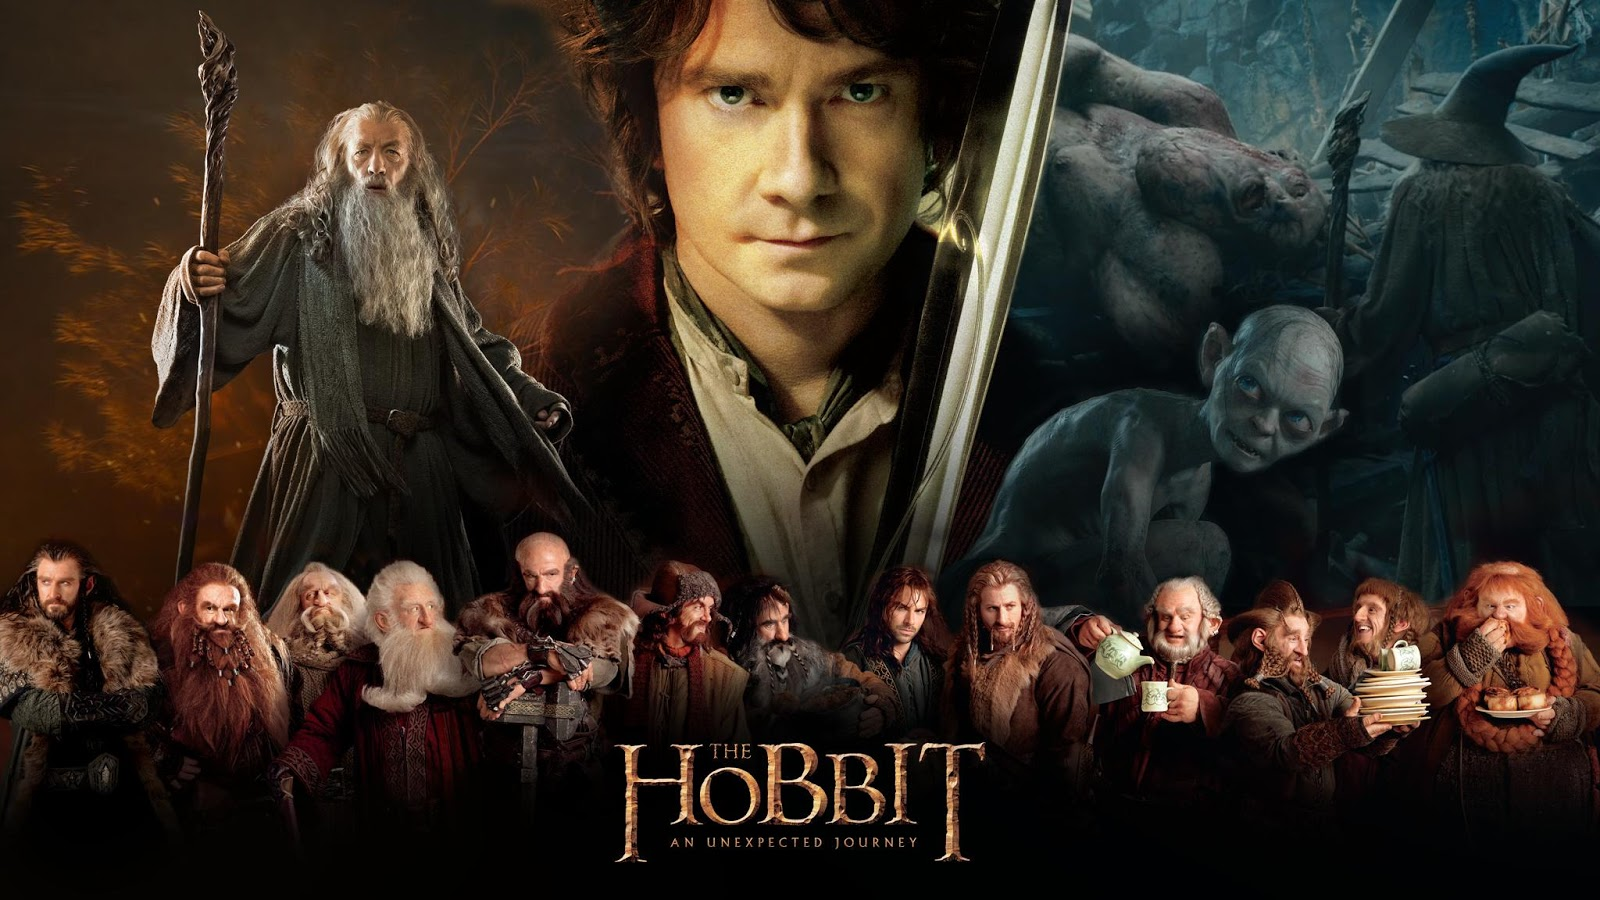 the hobbit an unexpected journey The hobbit: an unexpected journey was released on 3d blu-ray, blu-ray and dvd in united states on 19 march 2013, and was released in the united kingdom on 8 april .